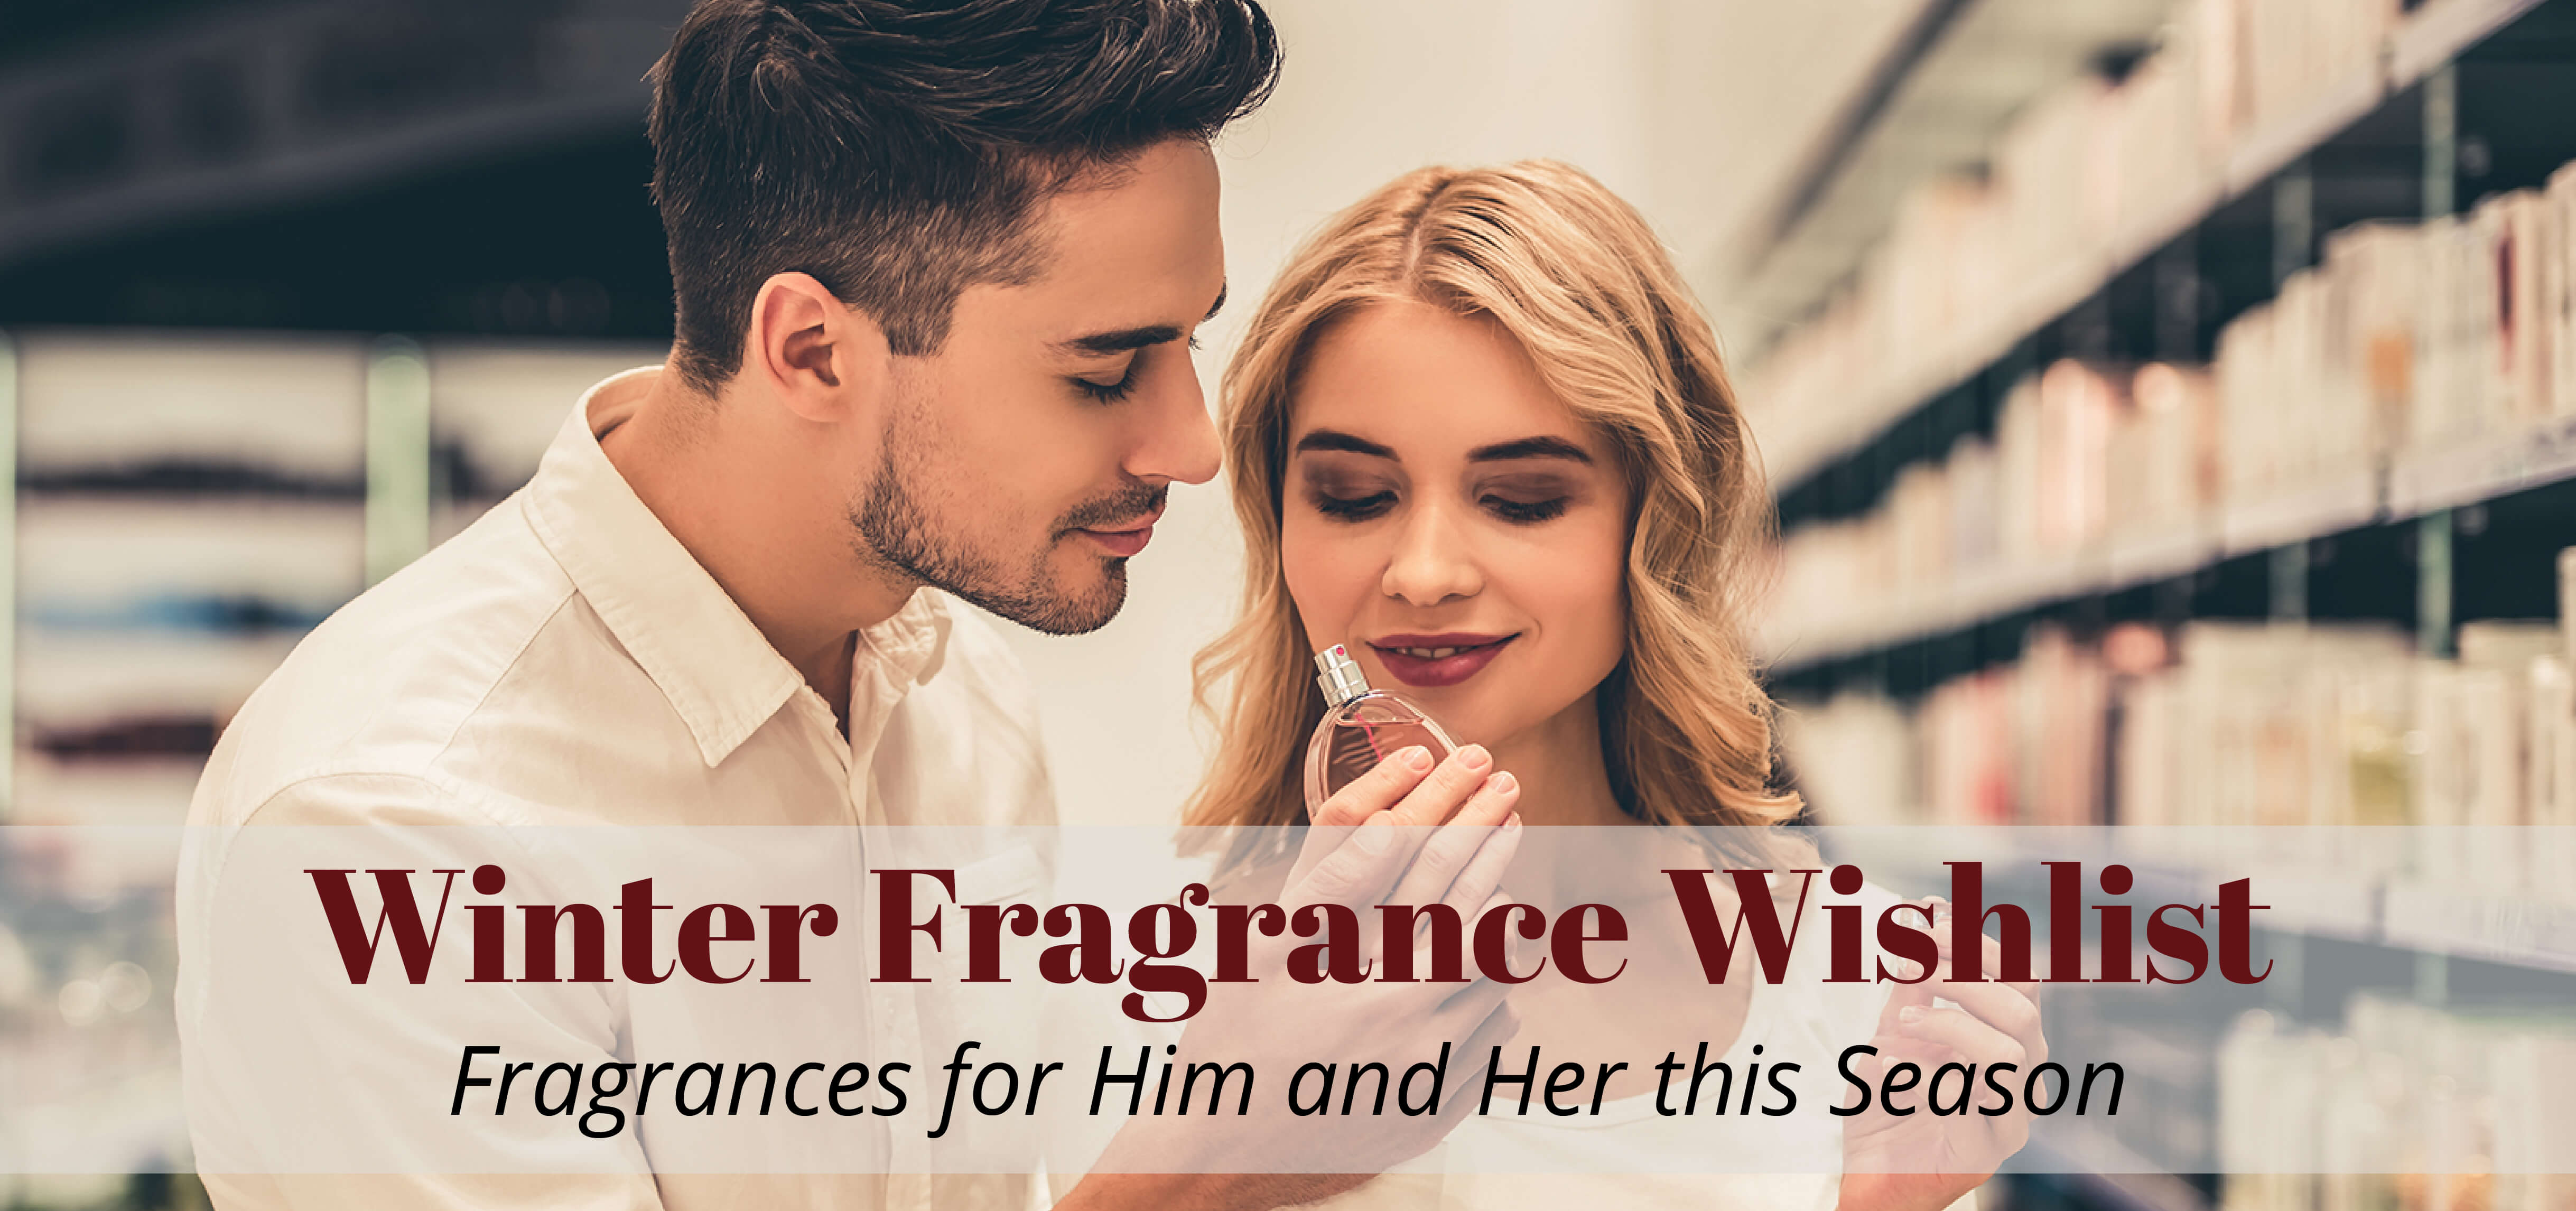 Winter_Fragrance_Wishlist_Slider_Image